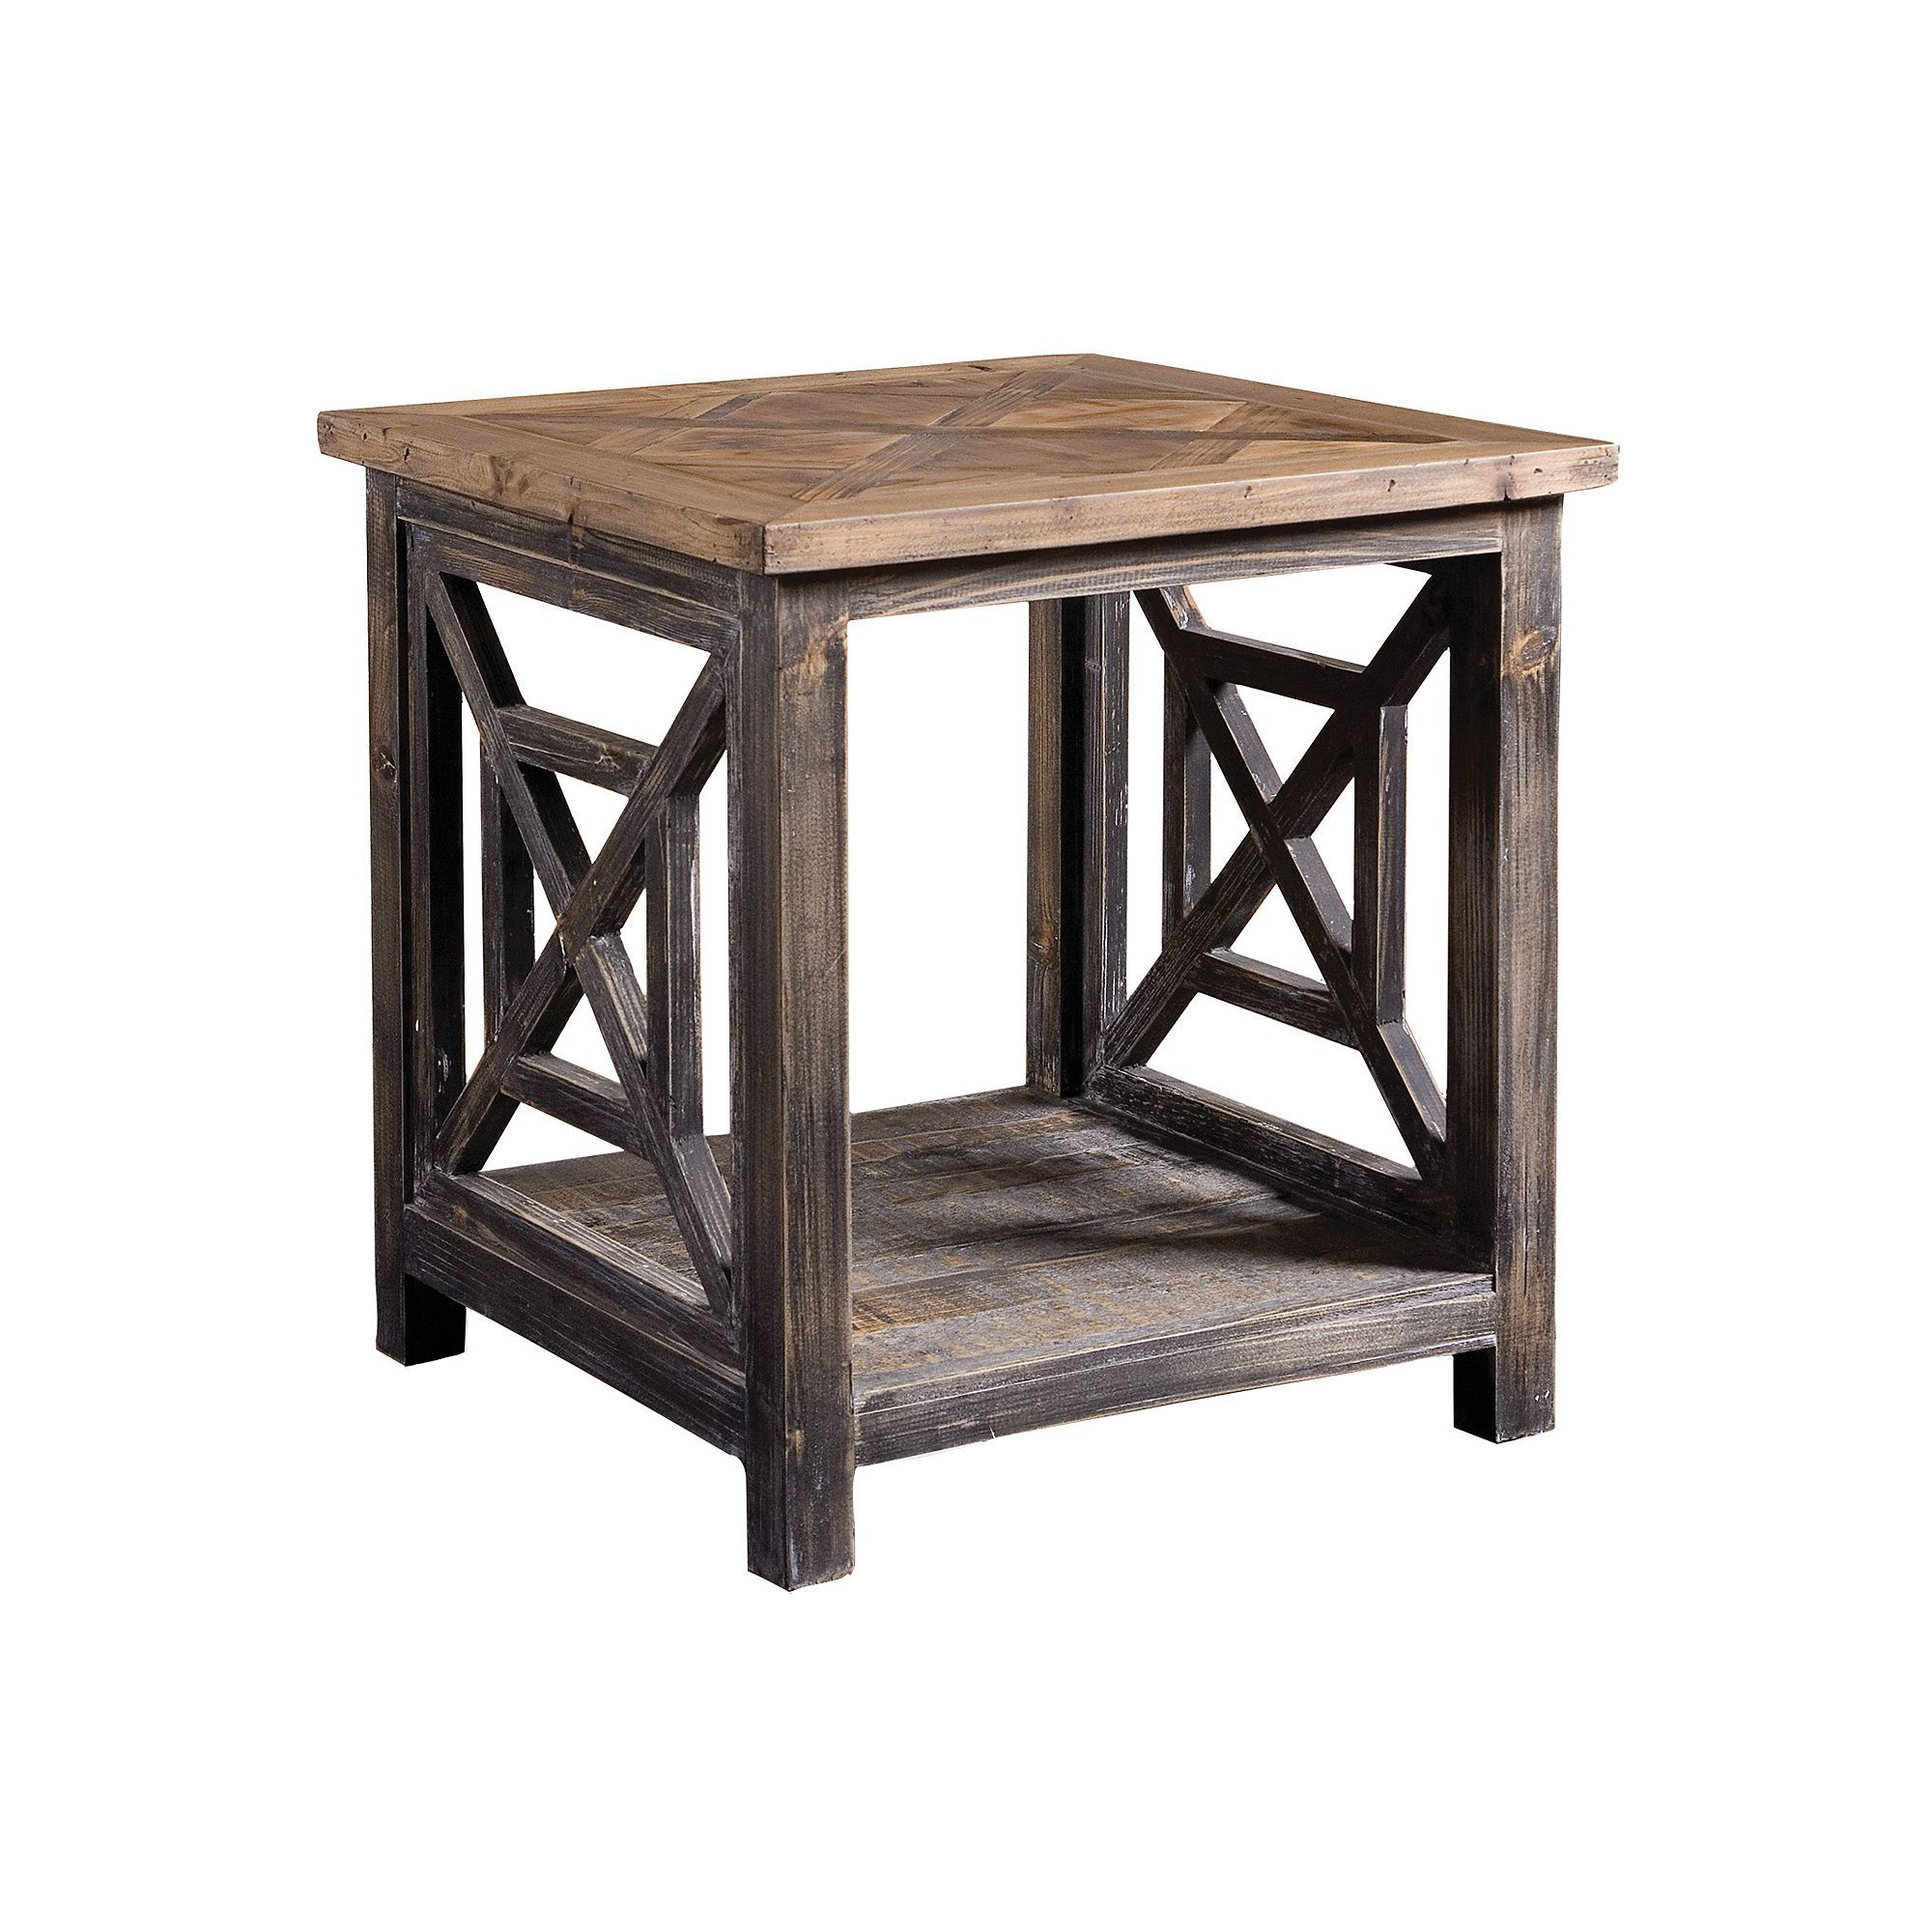 Spiro End Table Wood End Tables Wood Home Decor Rustic Furniture